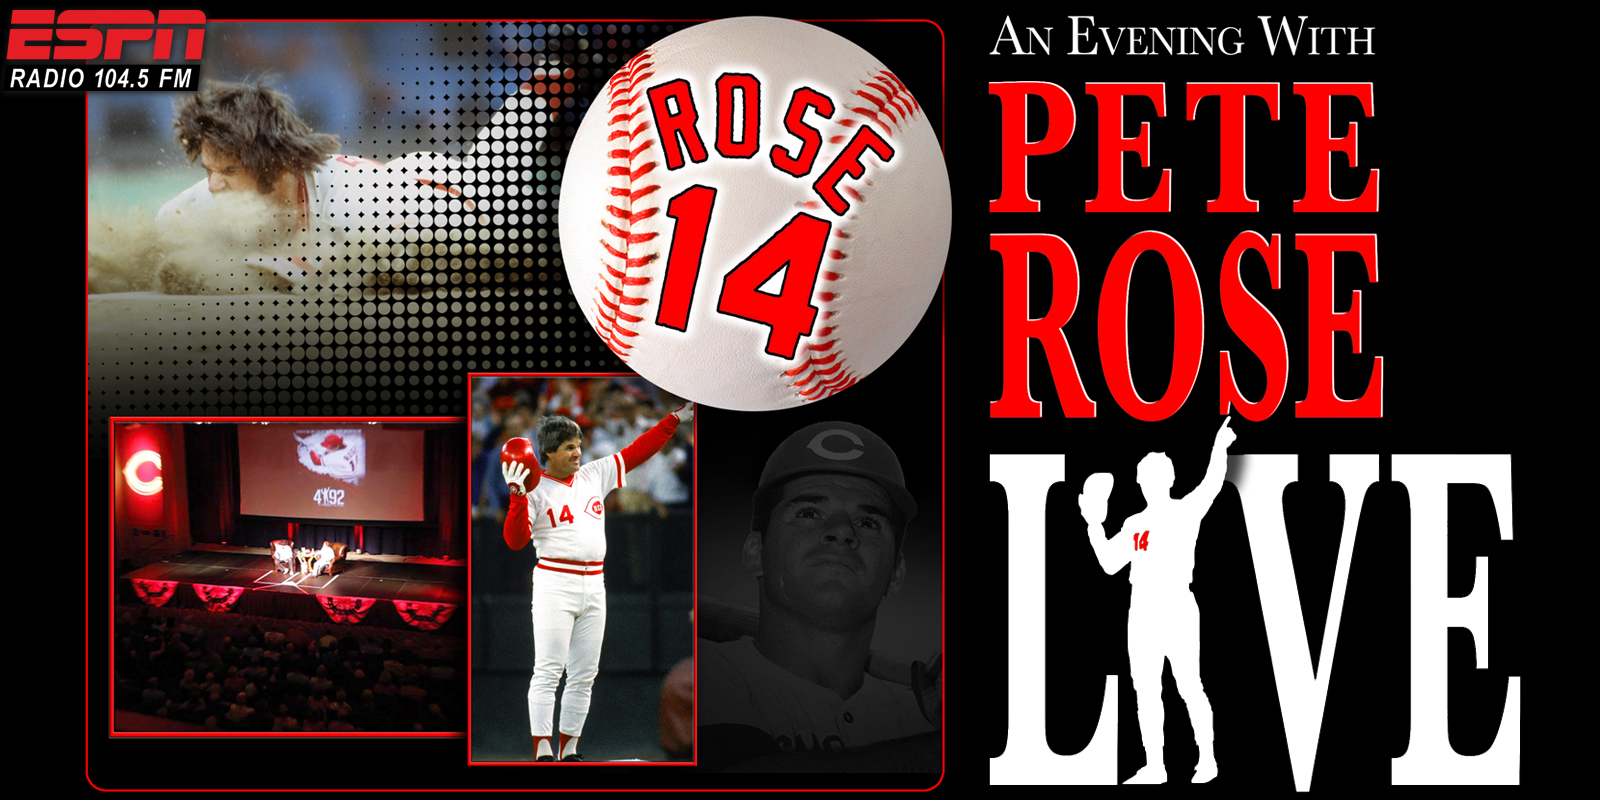 PeteRose18 - Wide.jpg